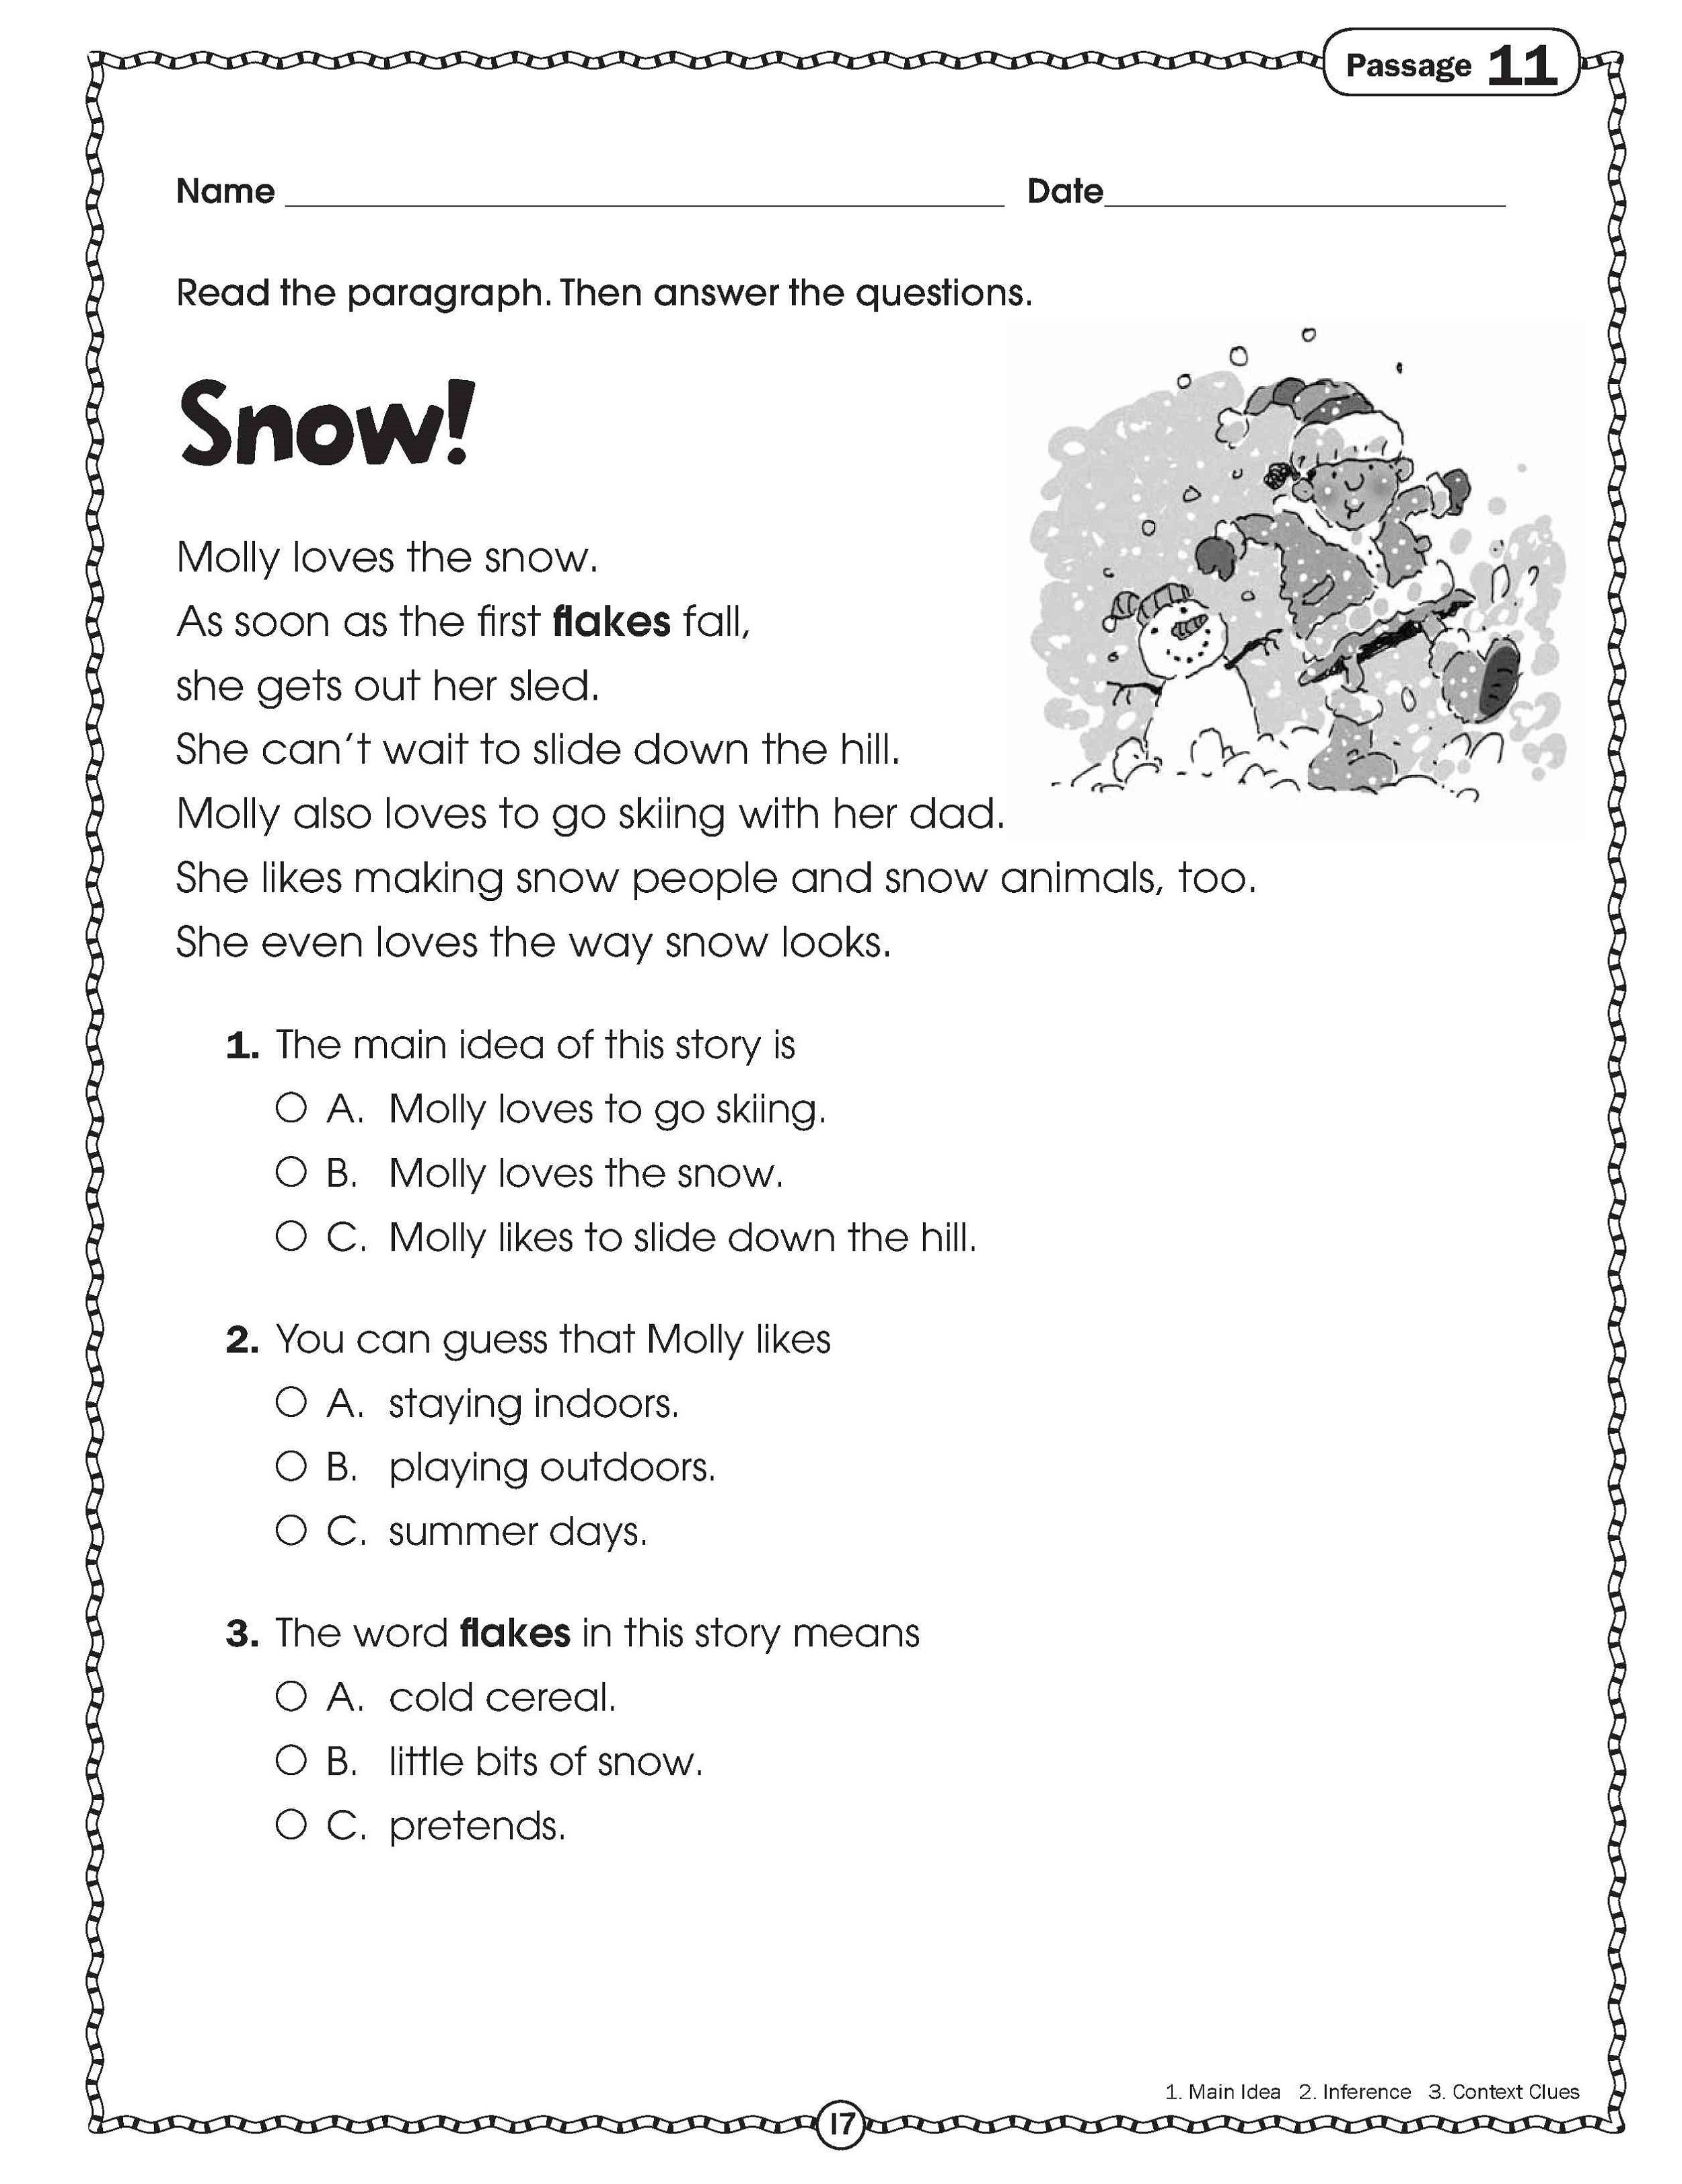 Free Handouts for Learning   Reading comprehension worksheets [ 3246 x 2500 Pixel ]